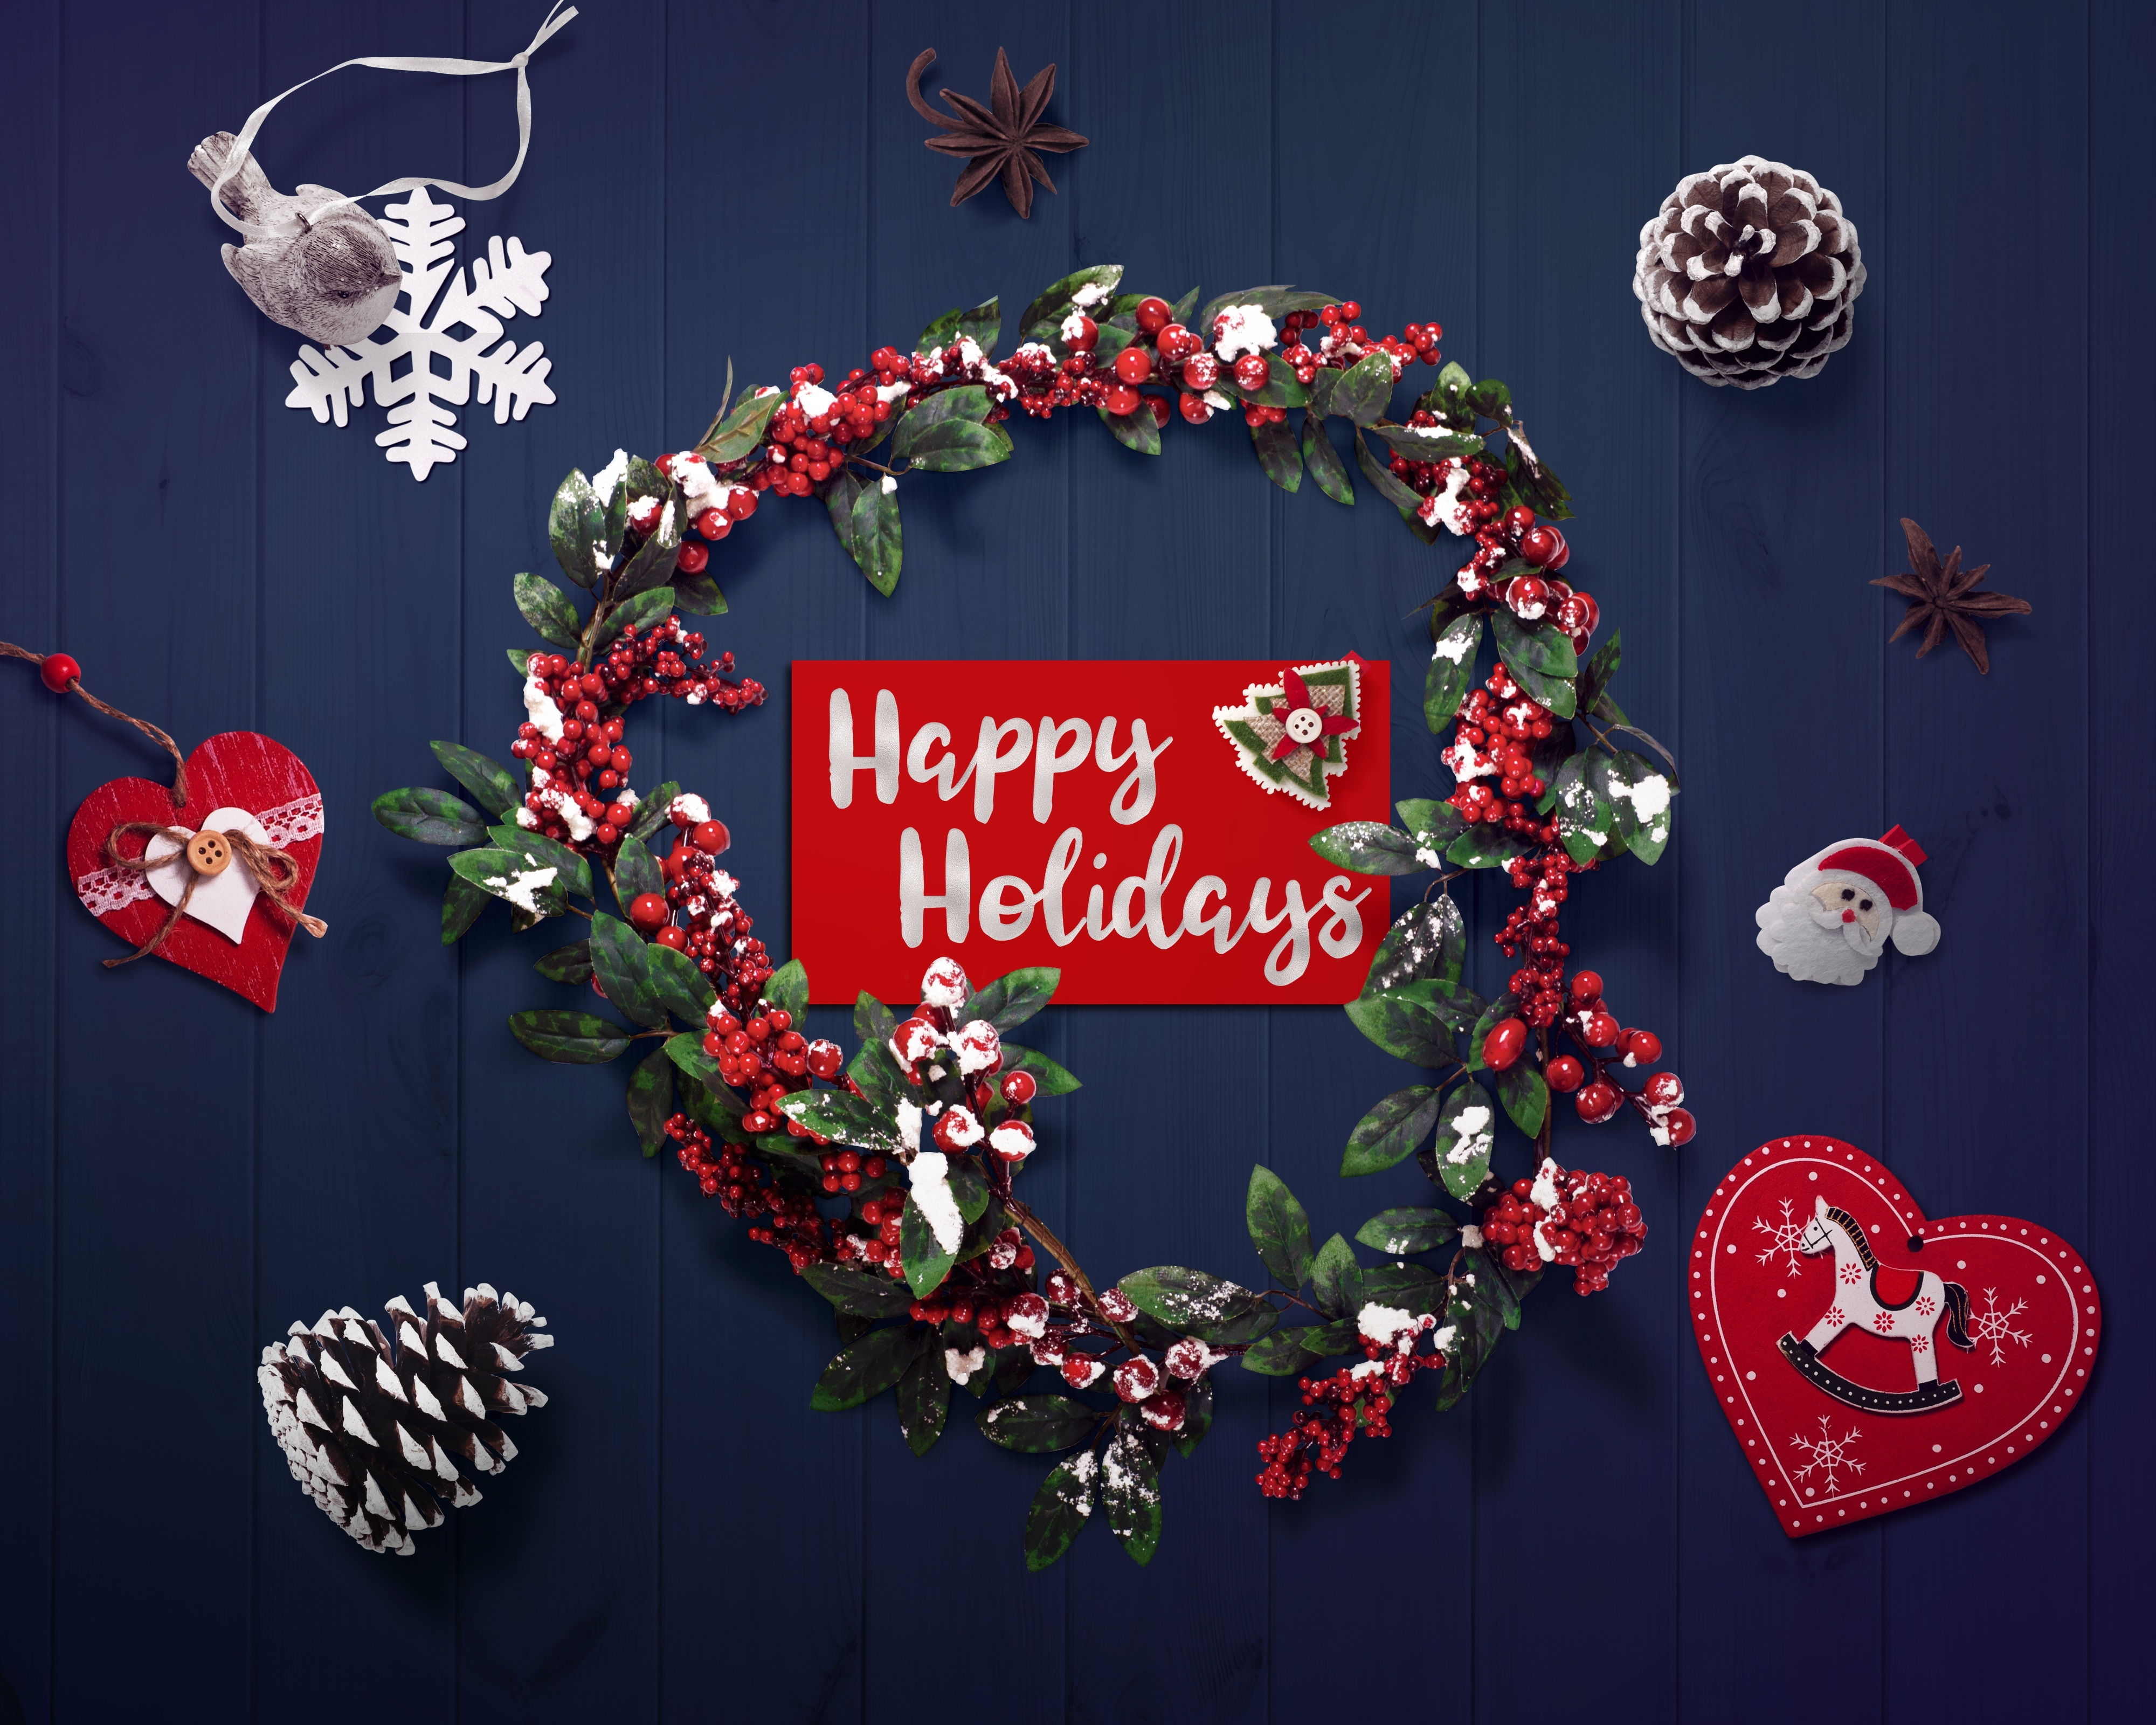 Download 4000x3200 Merry Christmas 2020 Decorations Happy 4000x3200